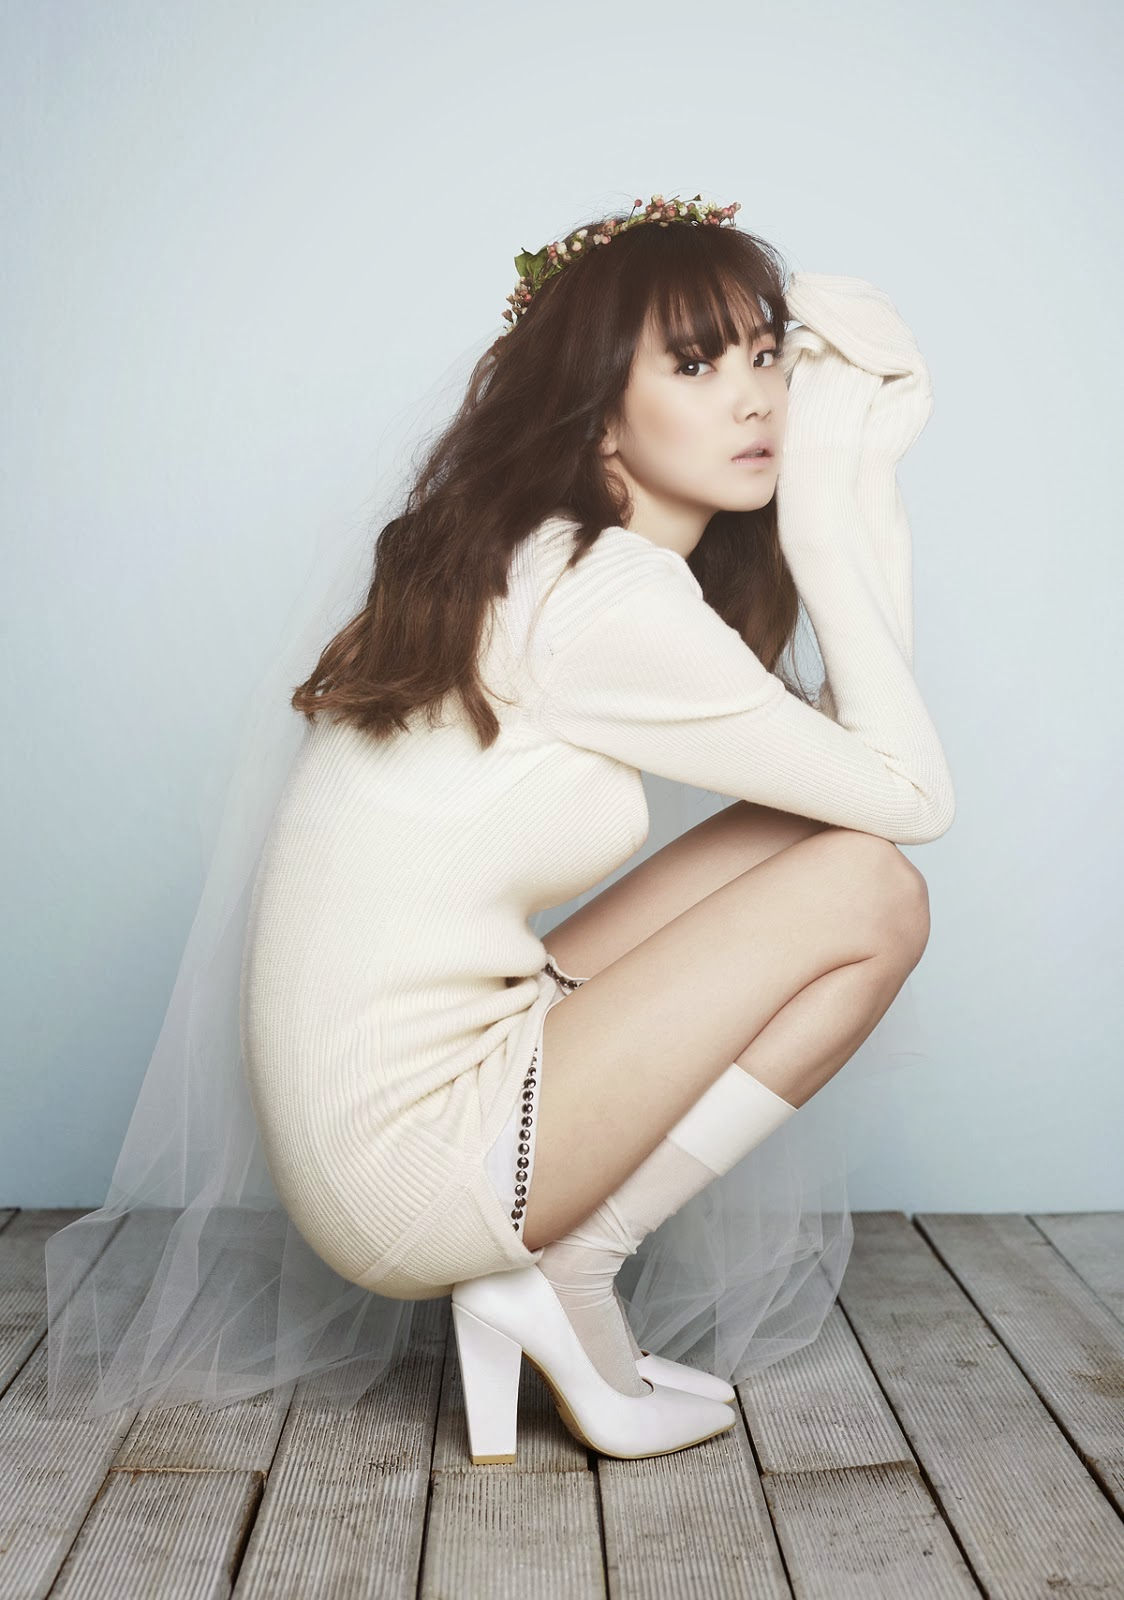 Yoon Seung Ah - Beauty+ February 2014